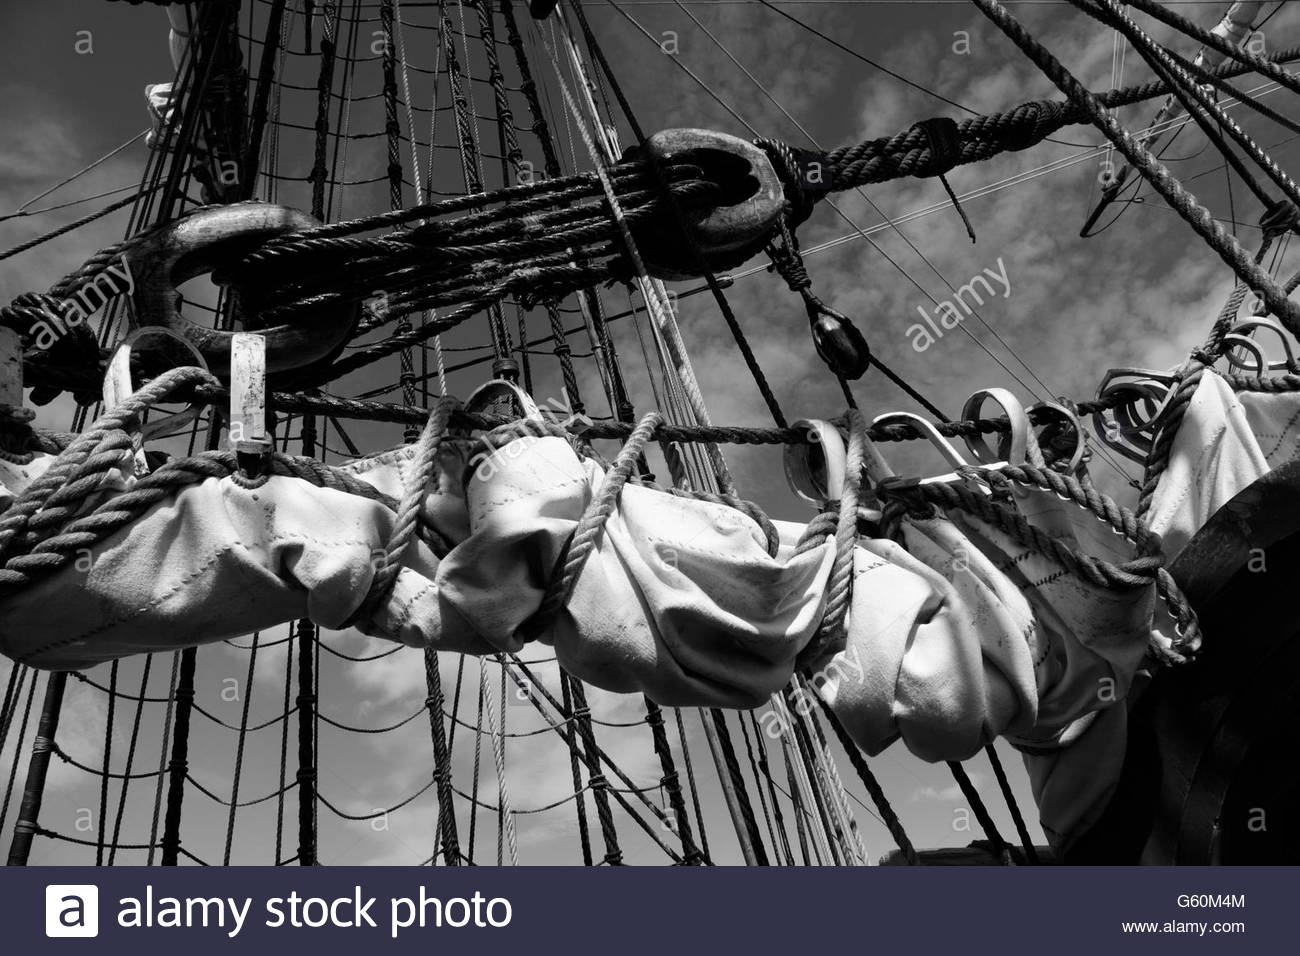 Reefed canvas sail and rigging of a tall ship - Stock Image